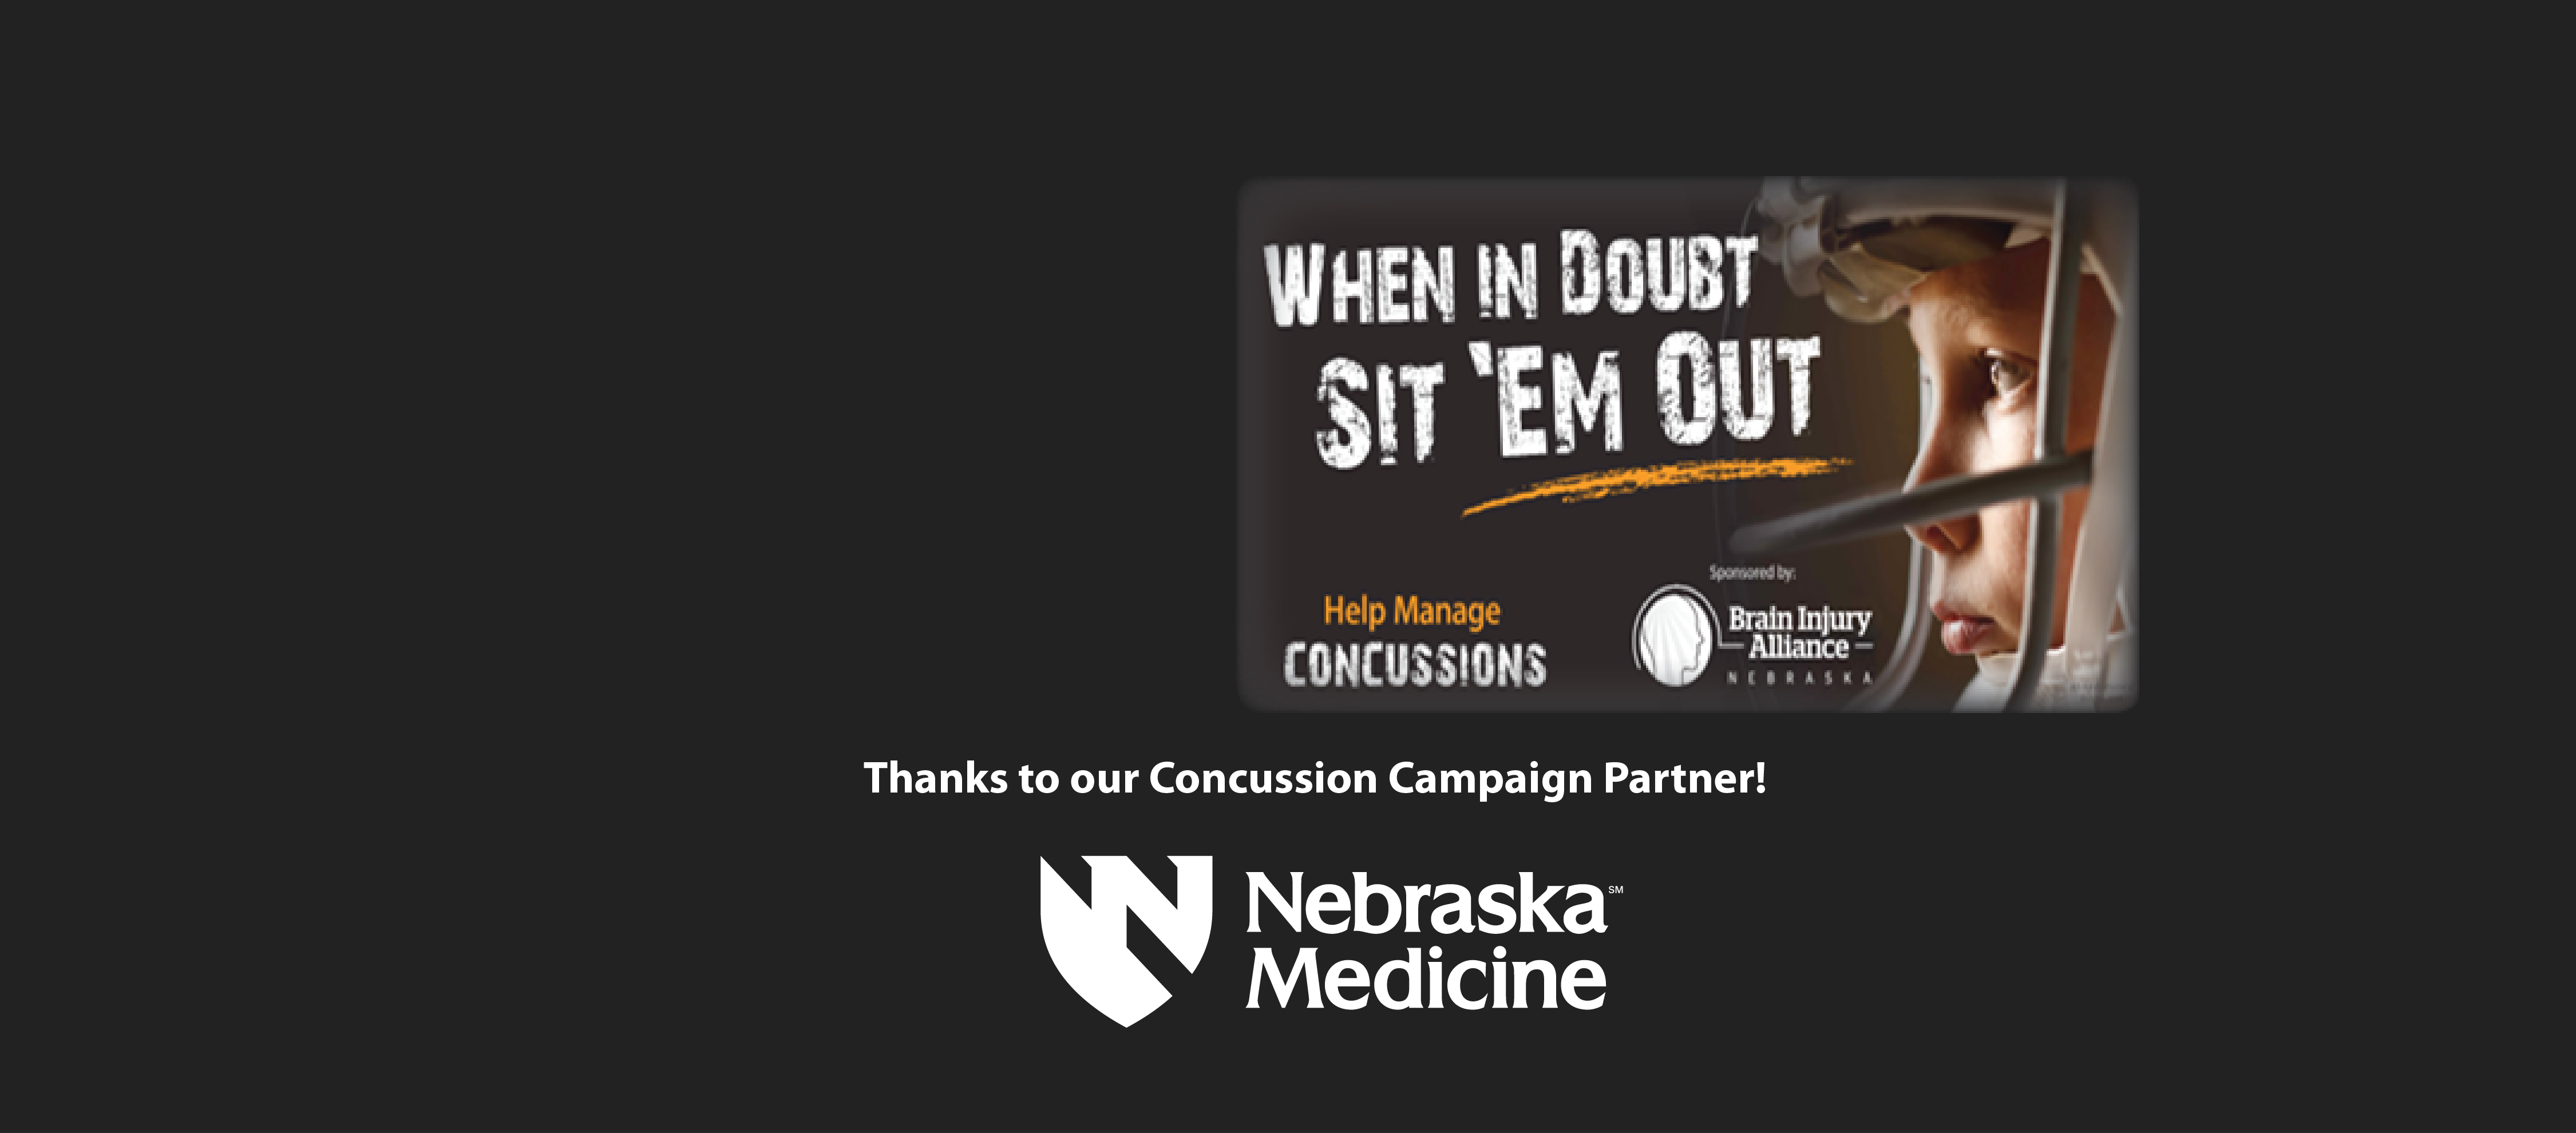 Learn More About Concussions